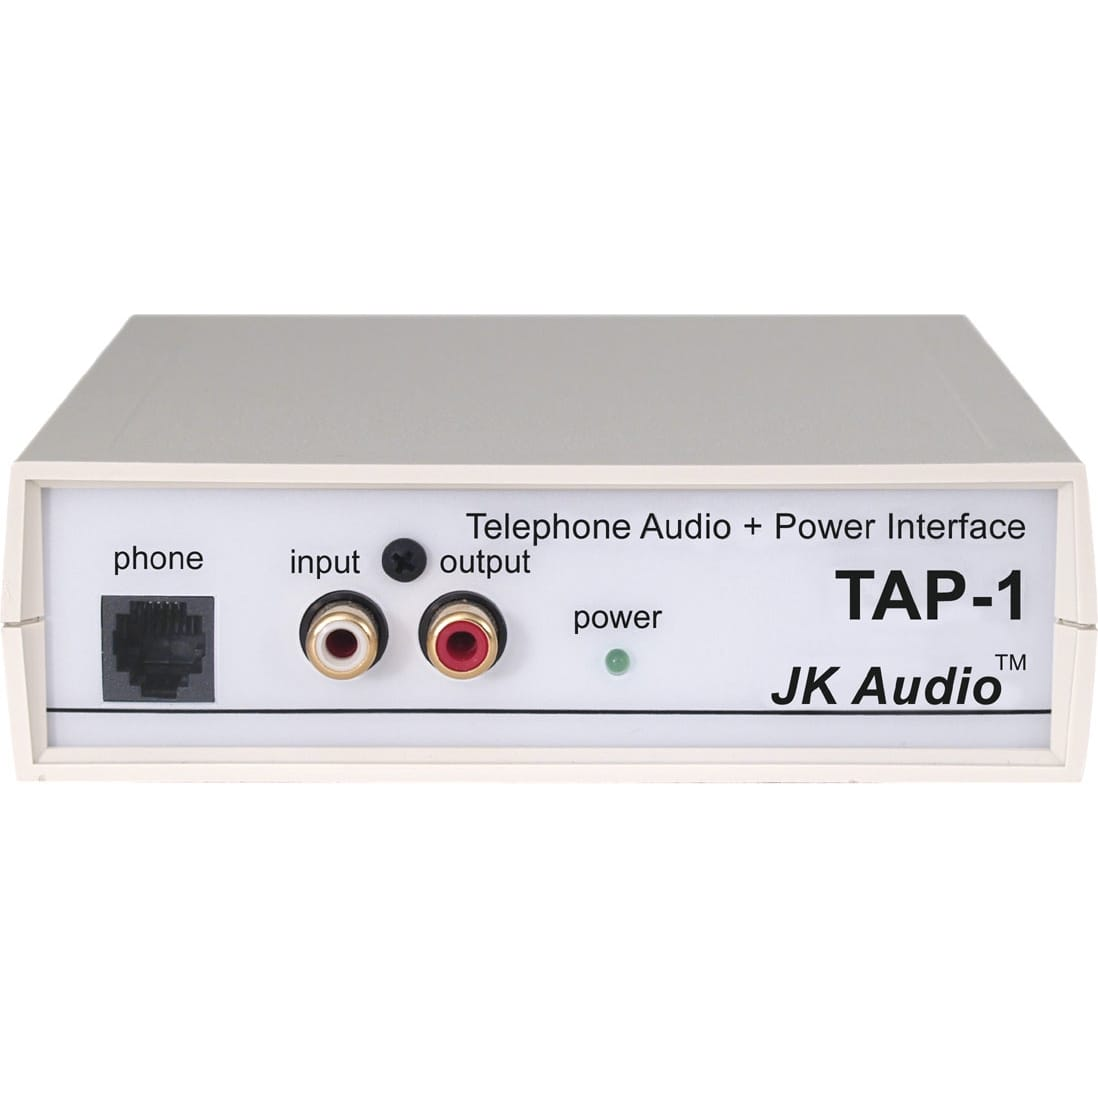 Jk Audio Tap 1 Telephone Power Interface Hybrid Phone Echo Cancellation Circuit Electrical